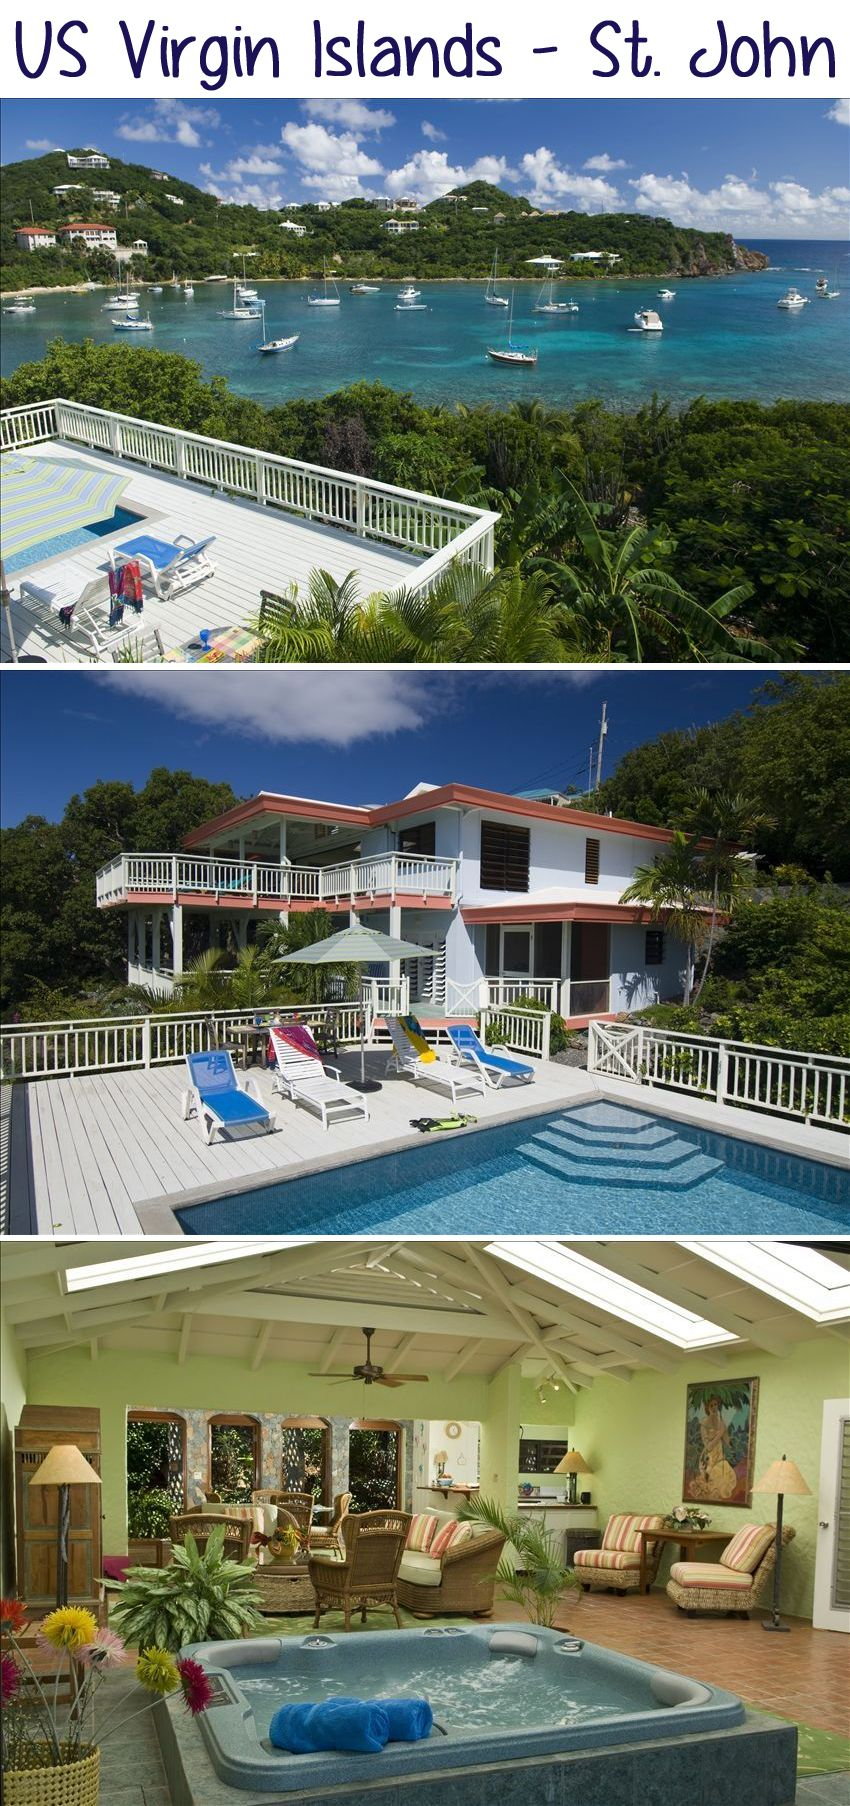 US Virgin Islands - St. John - WOW!! This #vacation villa looks absolutely incredible :) A little #ocean time sounds lovely right about now.